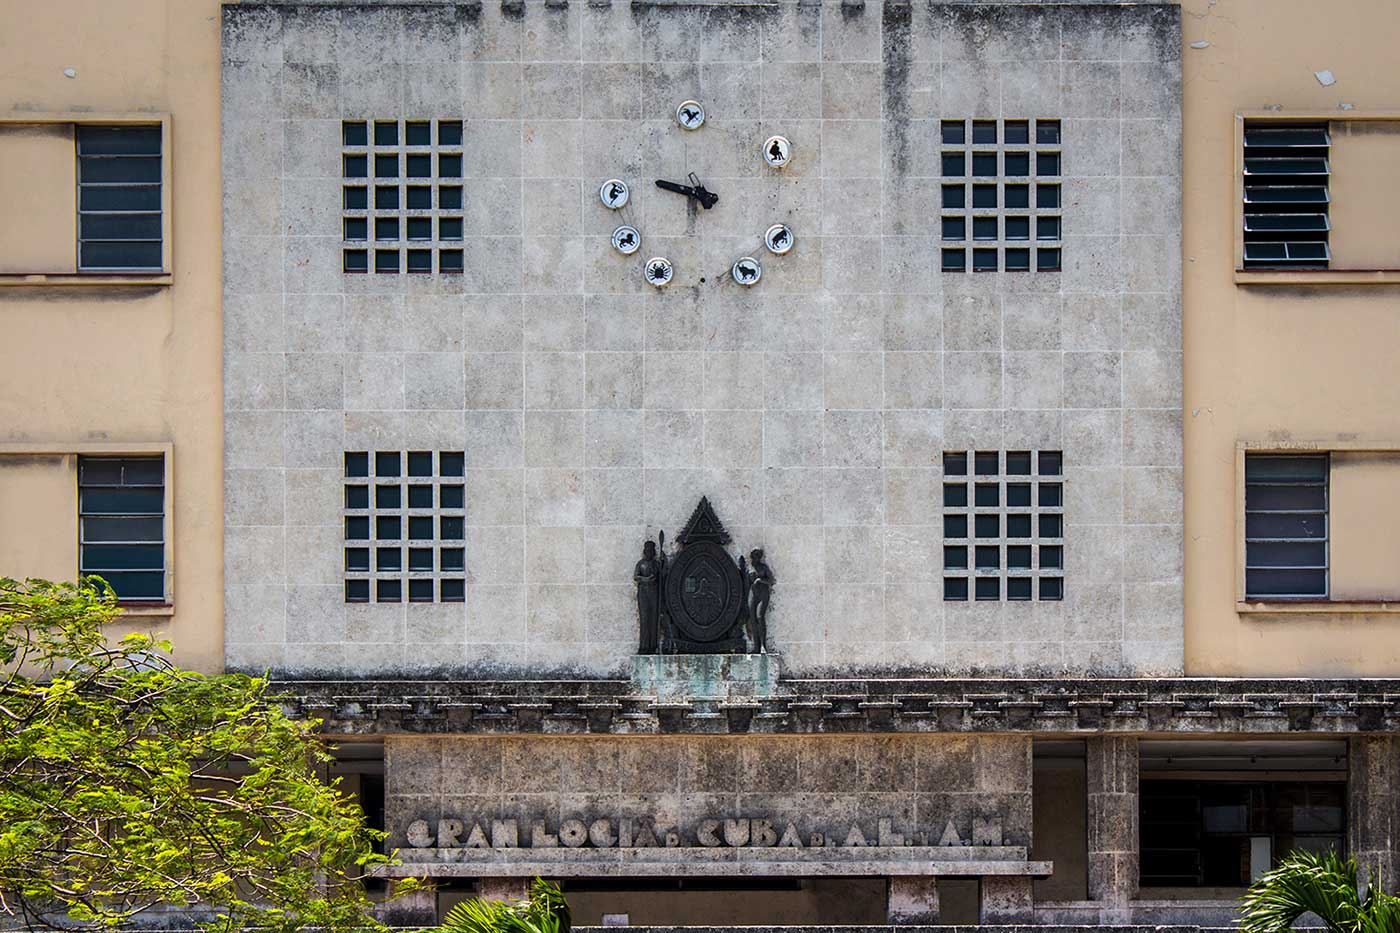 Gran Logia de Cuba: Above the Masonic crest, the 12 hours are marked with zodiac signs.